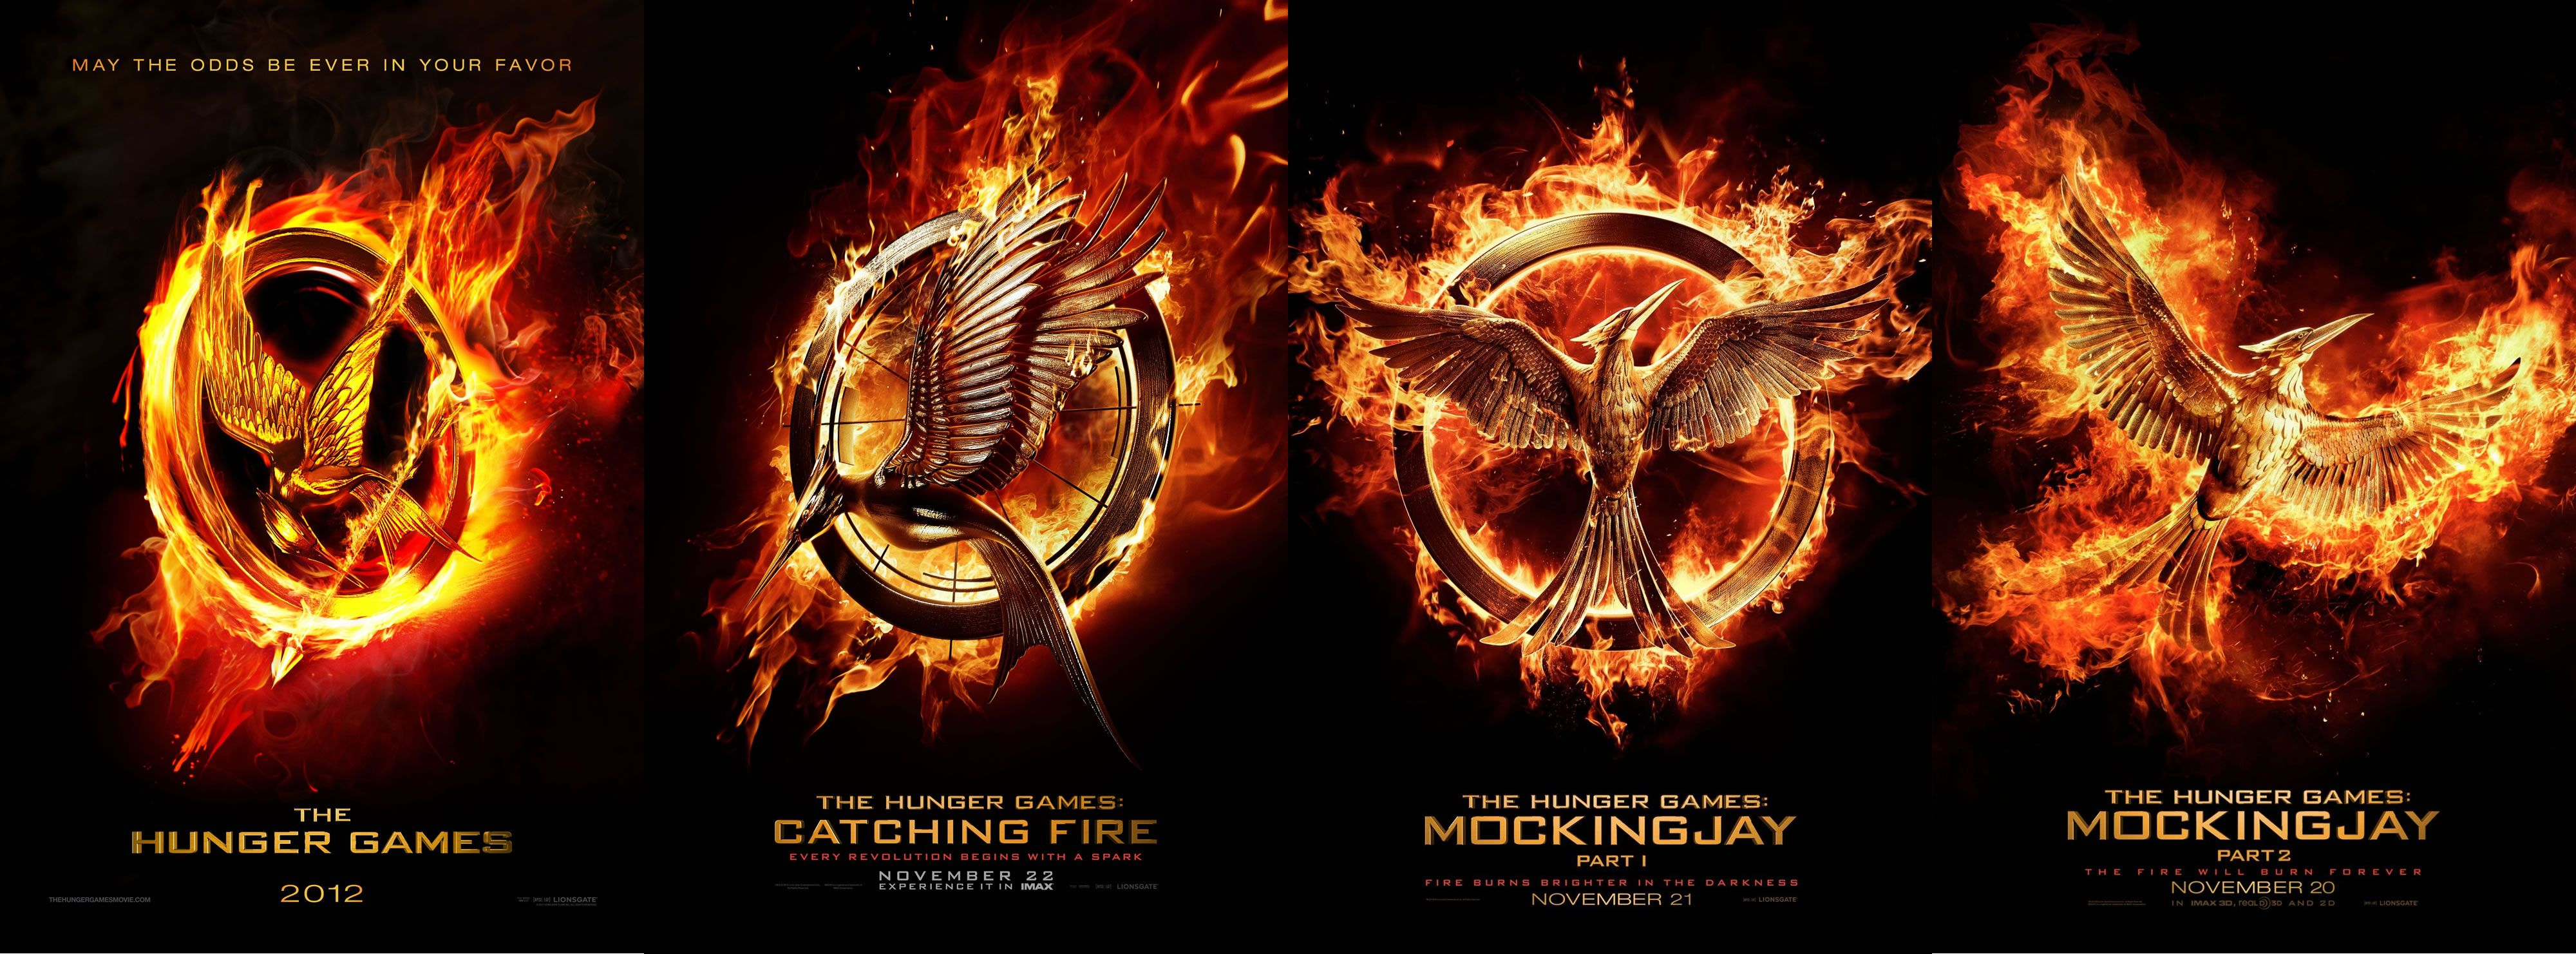 the hunger games 1 and 2